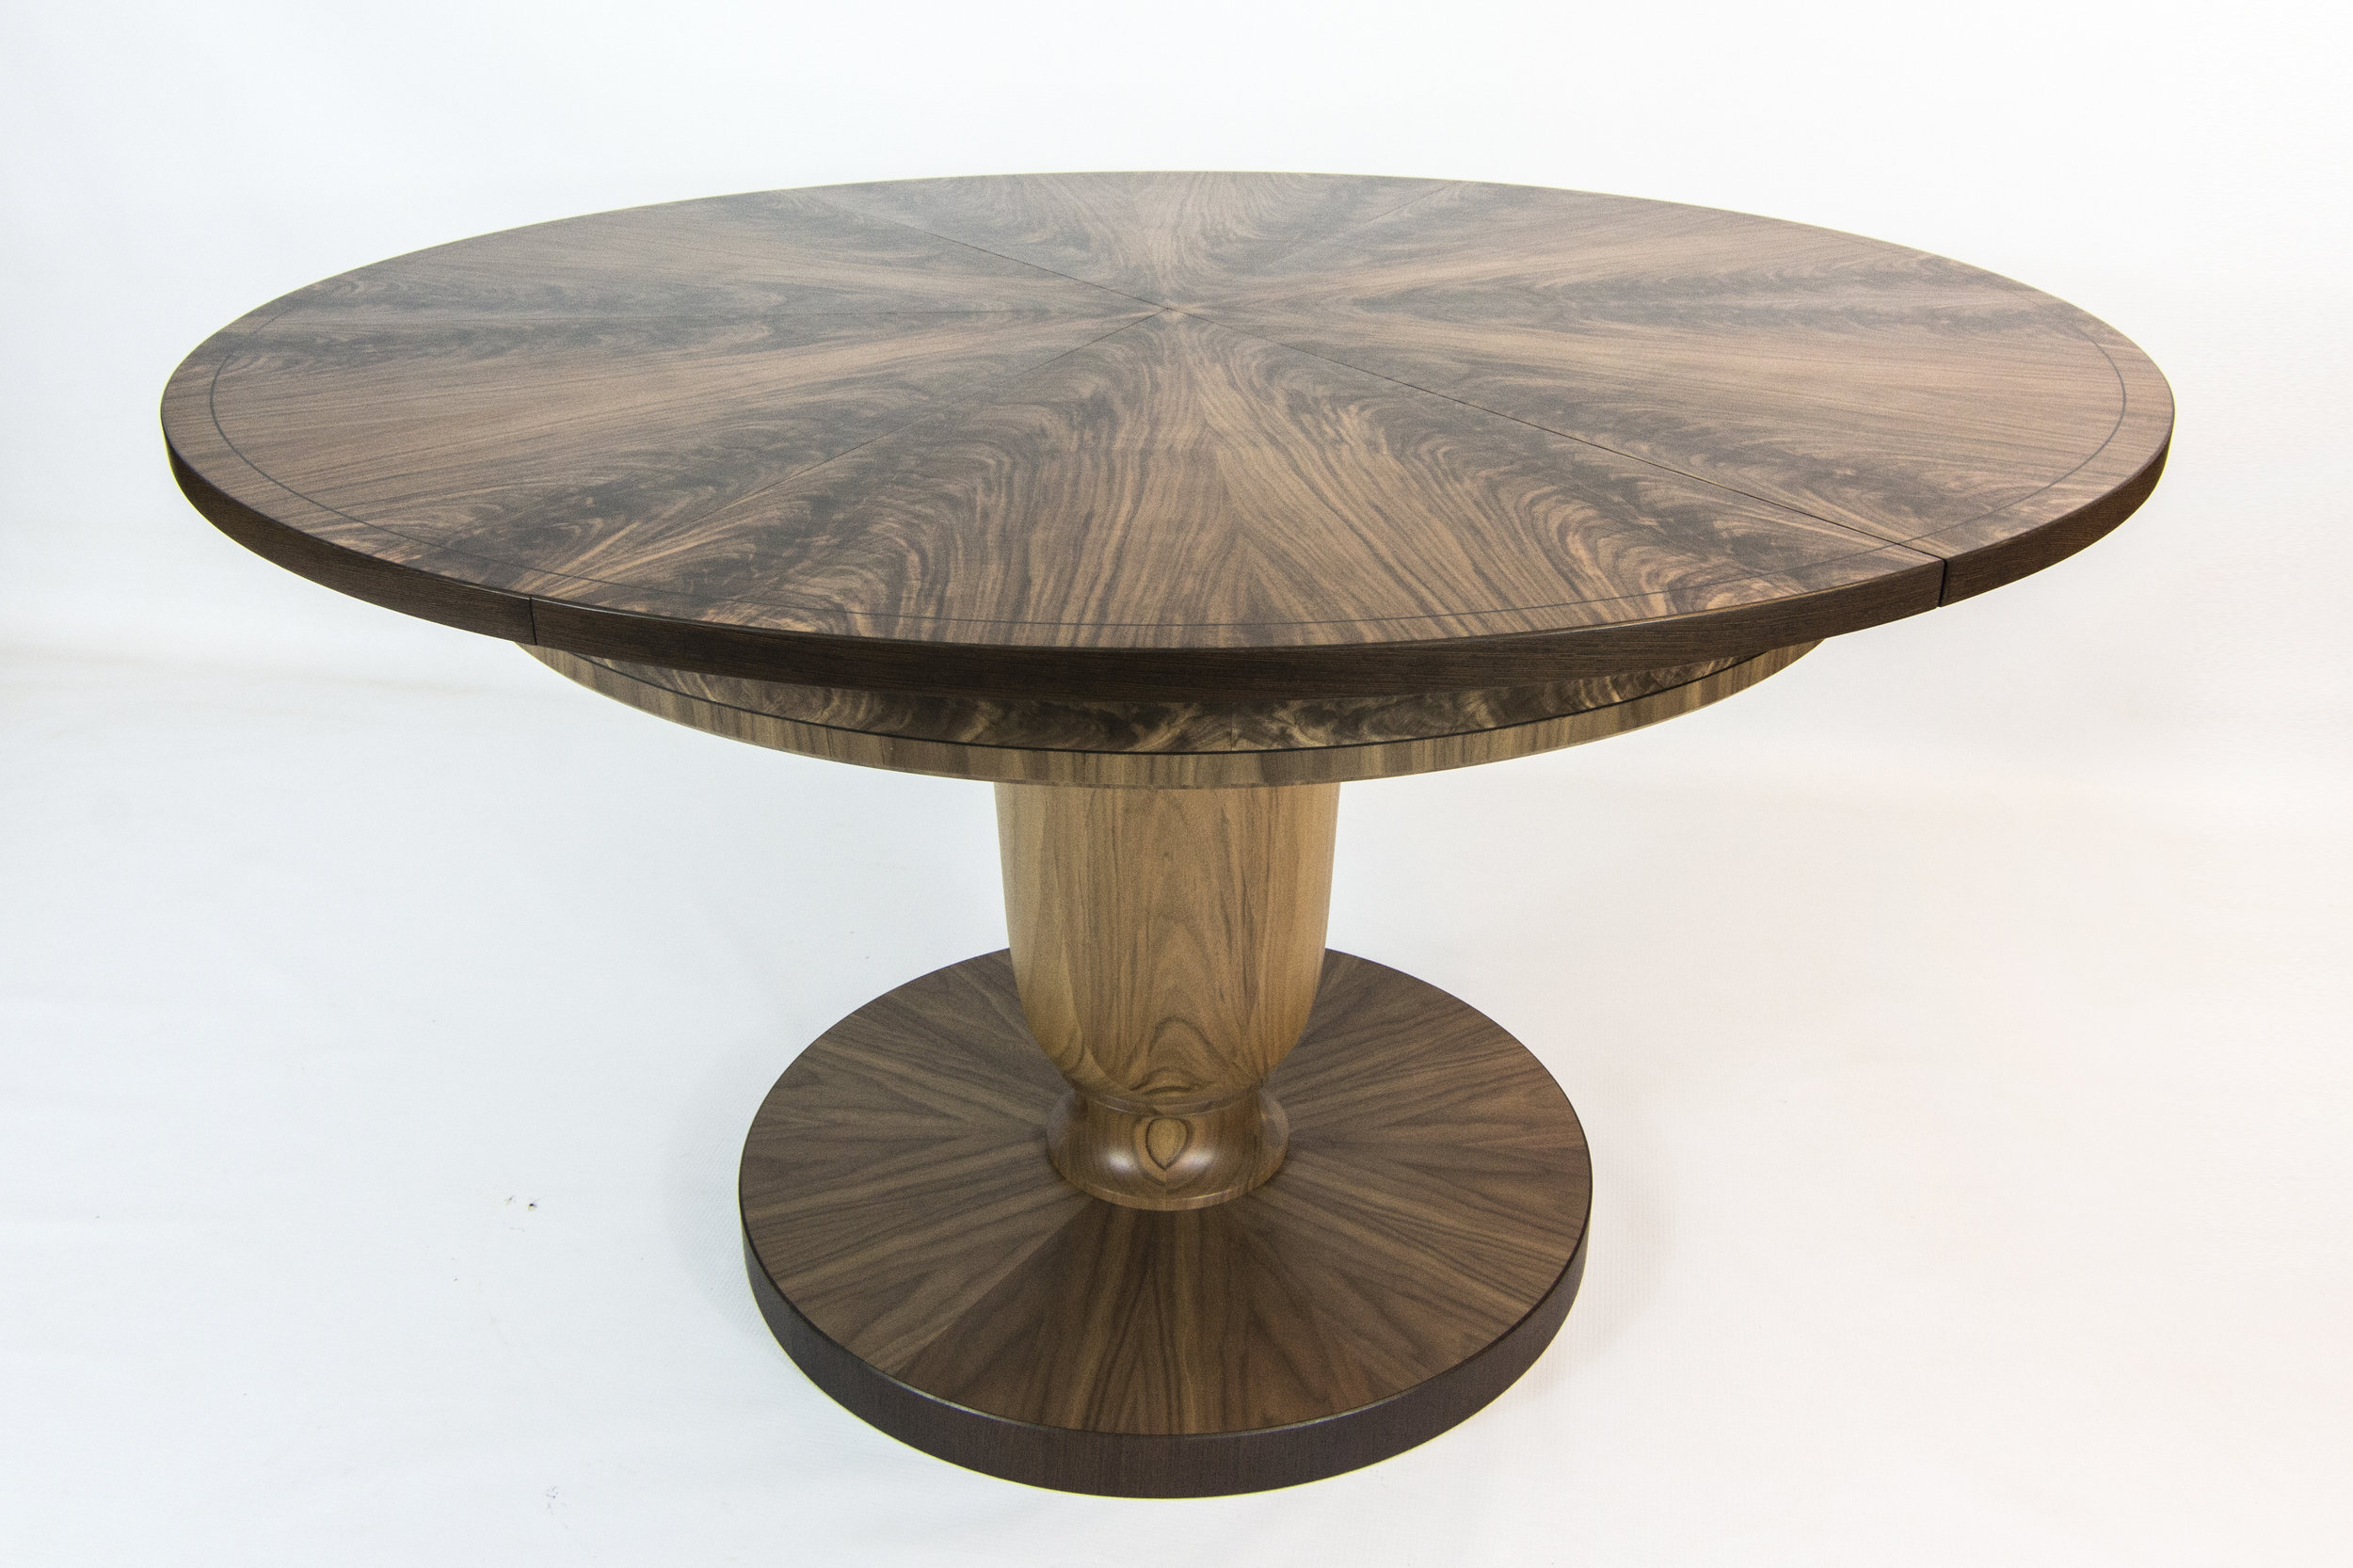 Walnut table 1.6m 01.jpg